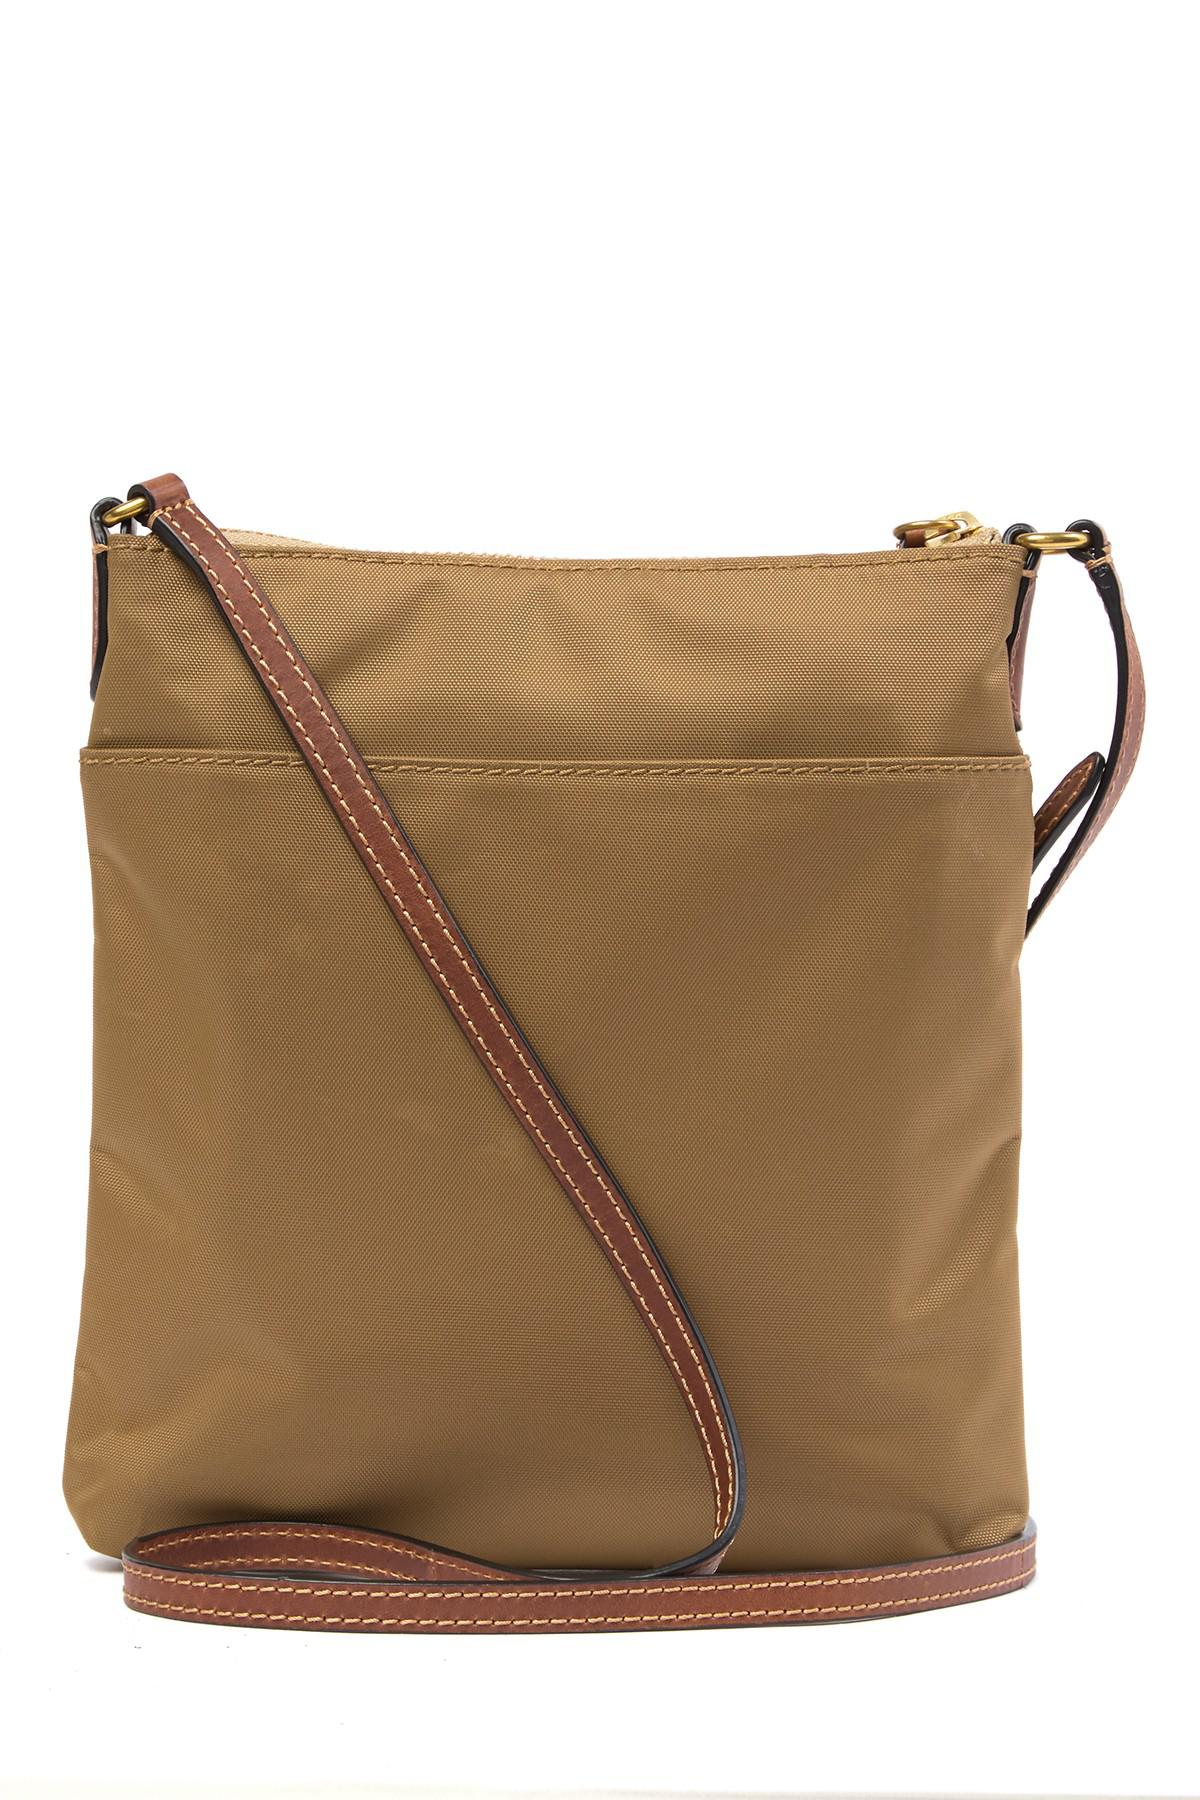 925d79075c Lyst - Frye Ivy Nylon Leather-trimmed Crossbody Bag